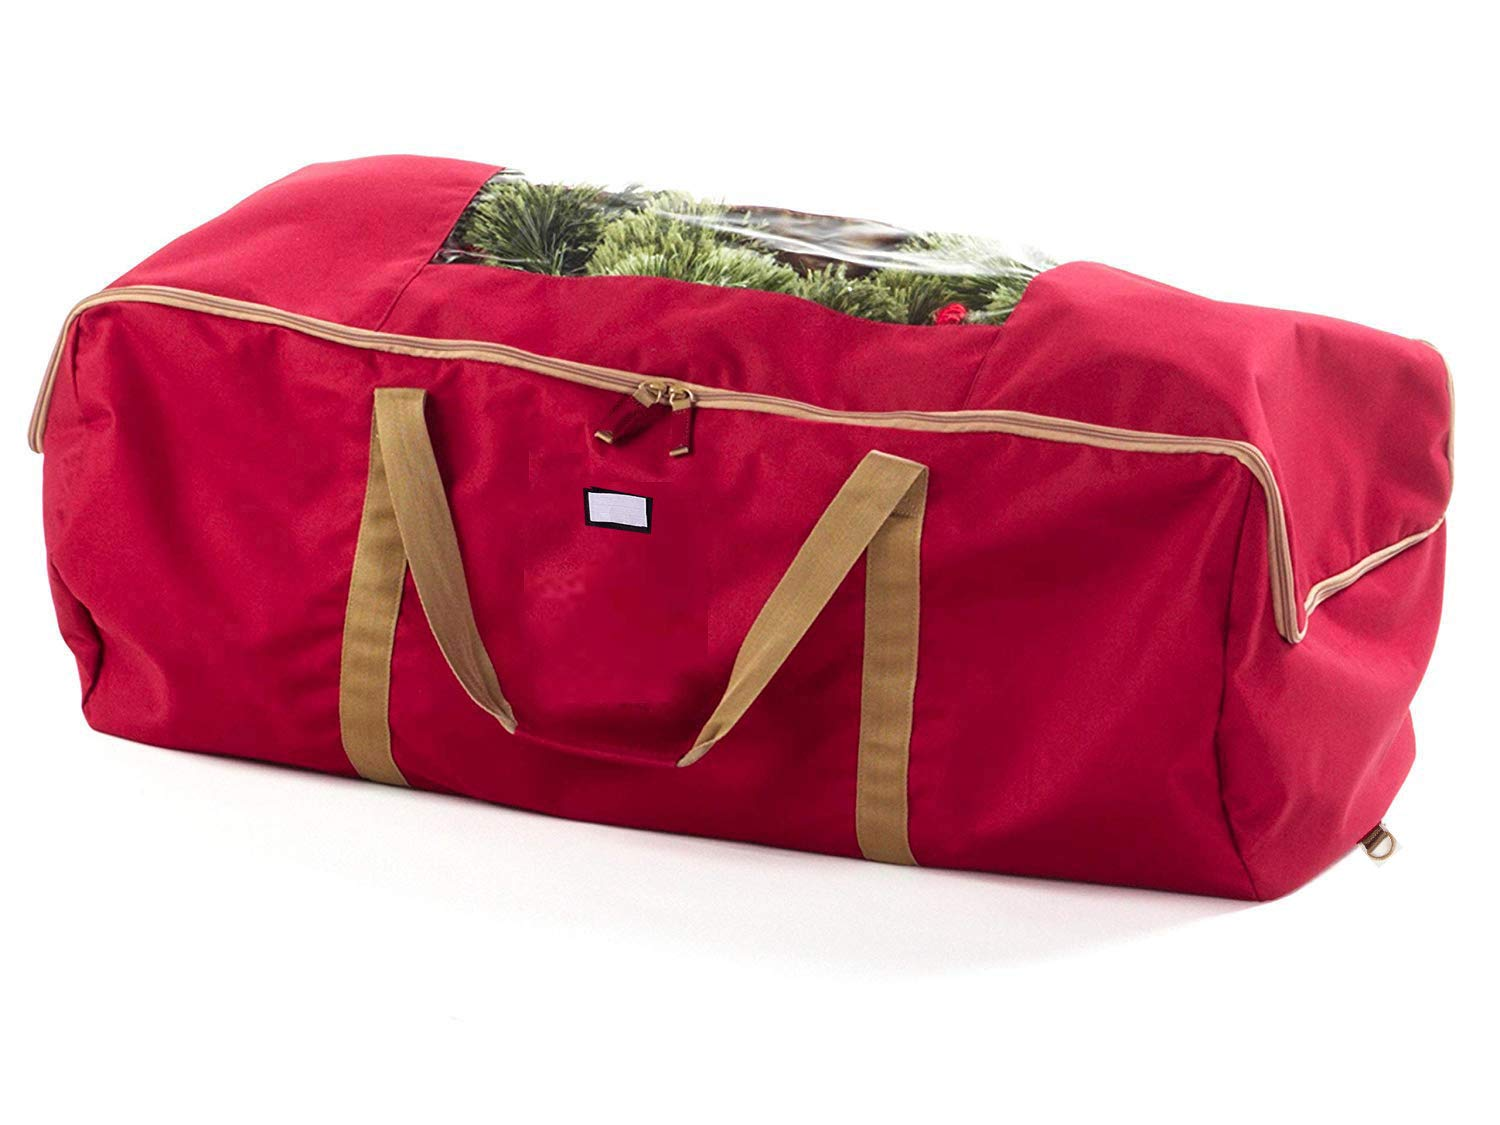 iiSPORT Christmas Tree Storage Bag Extra Large Holiday Storage Duffel Bag, Fits 9 to 11 Foot Tree Made of 600D Oxford, Red